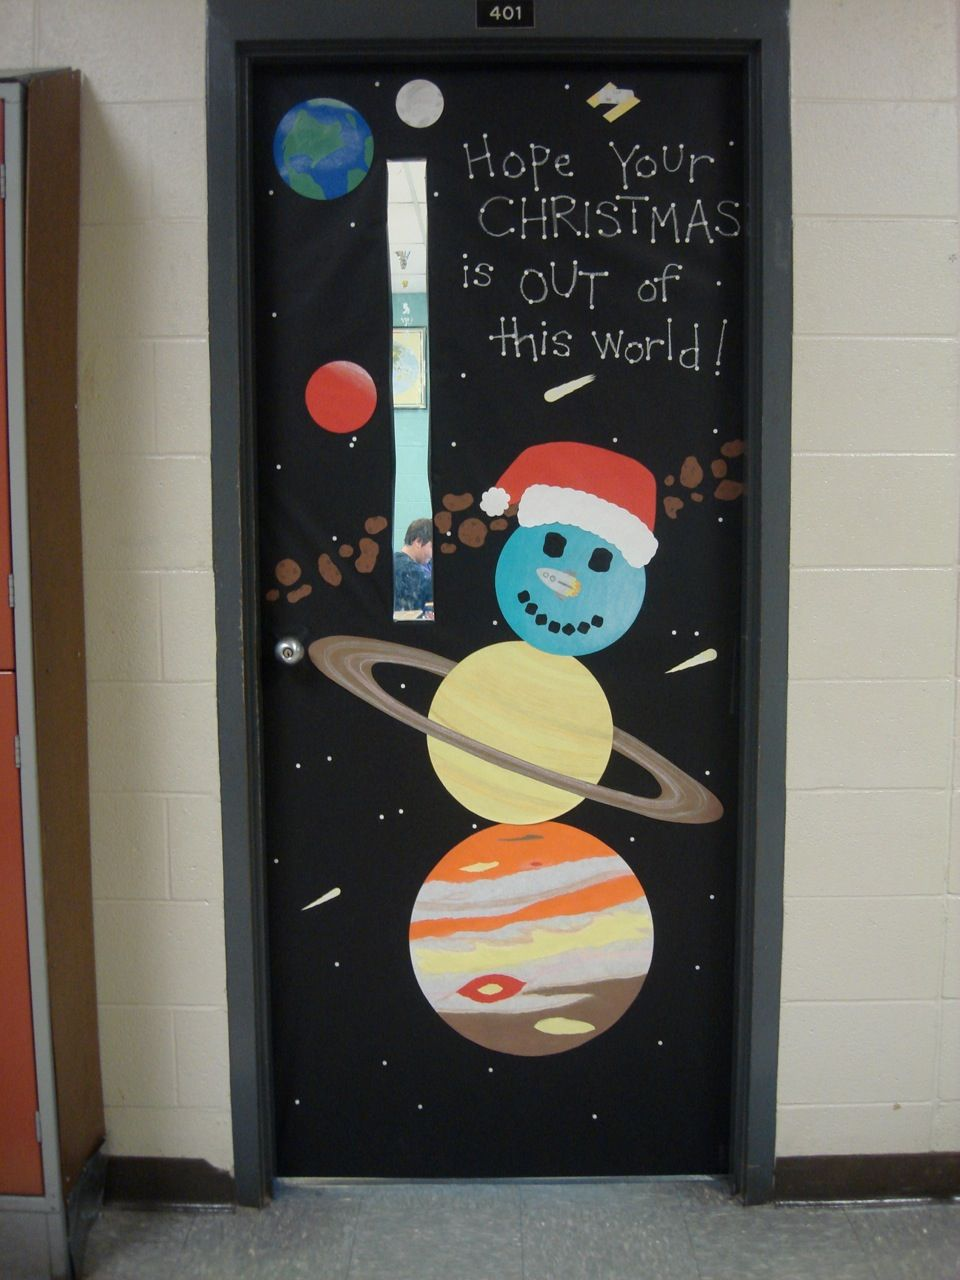 Christmas Classroom Decorations Teachers : Christmas door decorating contest and the science